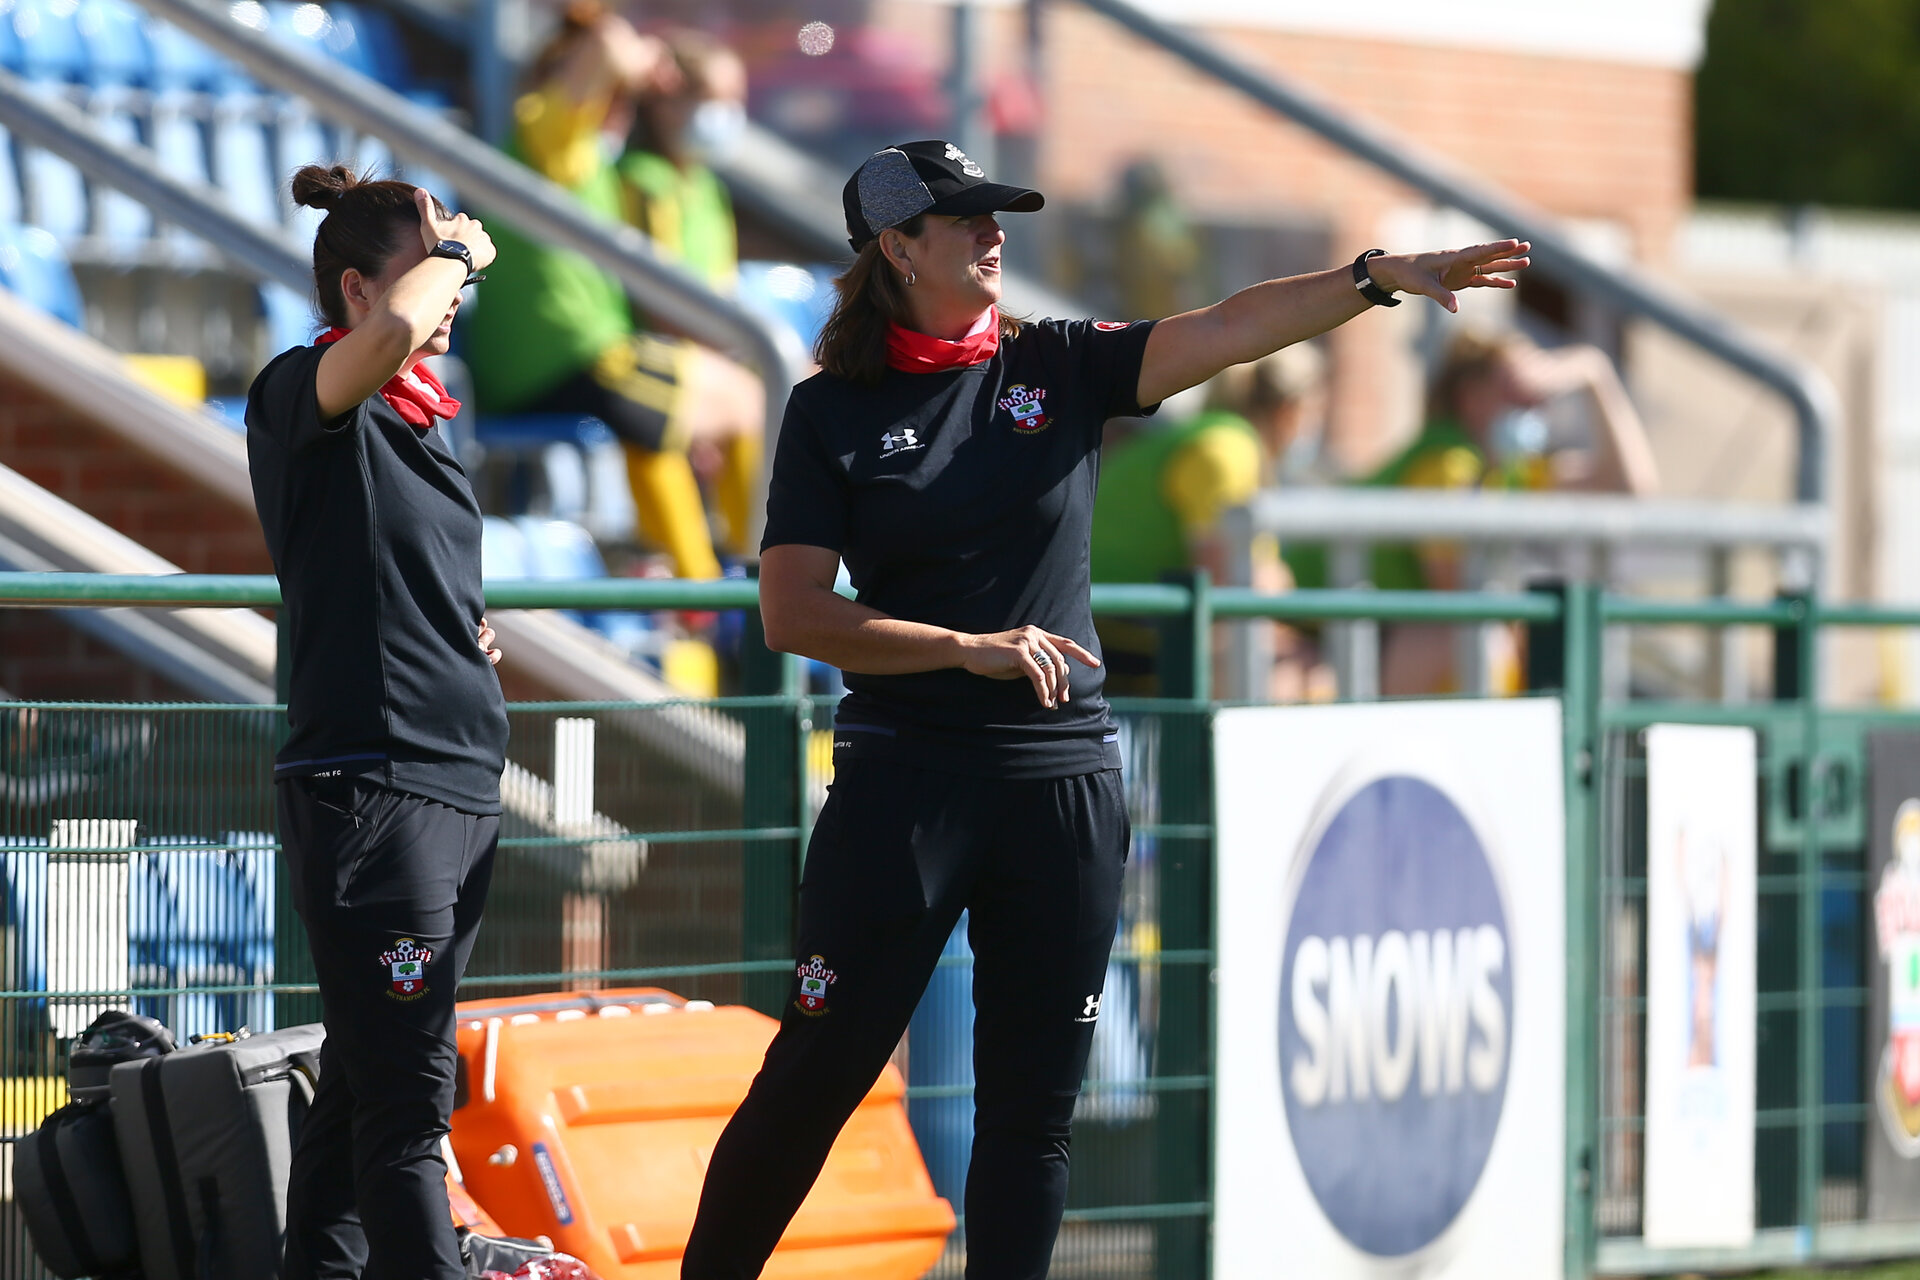 Southampton, ENGLAND - SEPTEMBER 27: Lauren Phillips (L) and Marieanne Spacey-Cale (R) during the FAWNL match between Southampton Women and Buckland Athletic at Snows Stadium on September 27, 2020 in Southampton, United Kingdom (Photo by Isabelle Field/Southampton FC via Getty Images)